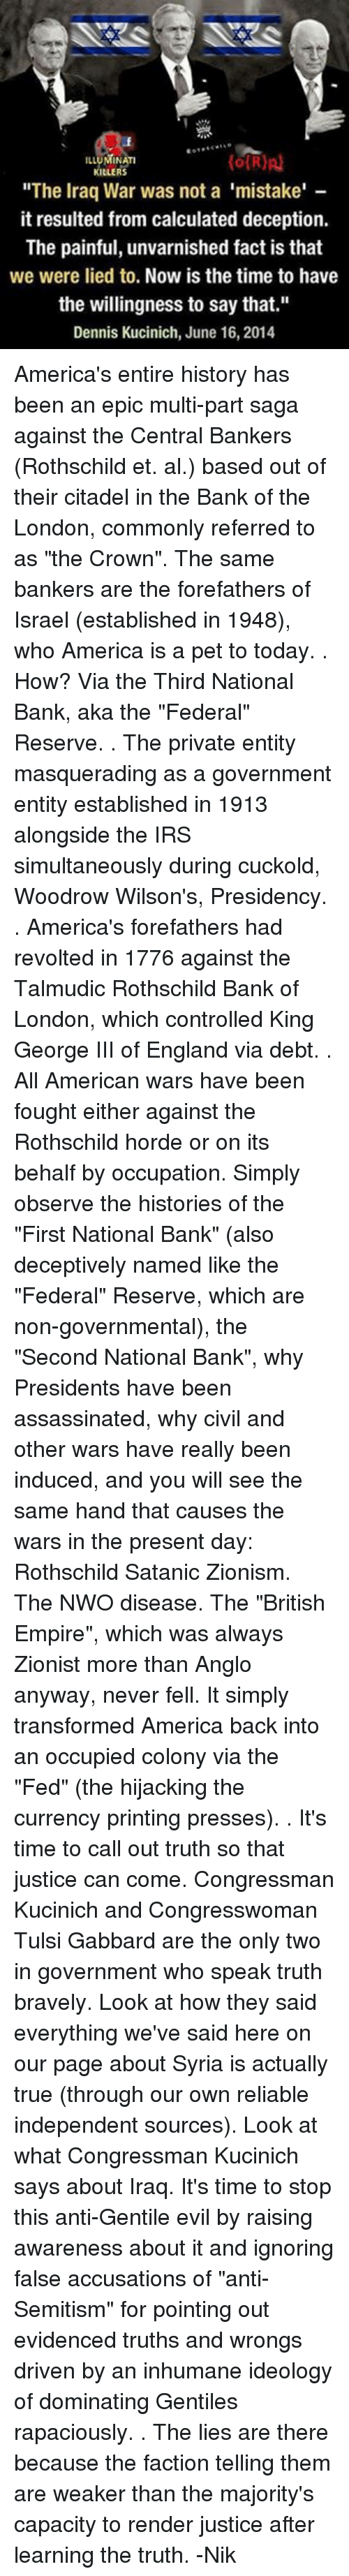 """rothschild bank: LLUMINATI  KILLERS  """"The Iraq War was not a 'mistake'  it resulted from calculated deception.  The painful, unvarnished fact is that  we were lied to.  Now is the time to have  the willingness to say that.""""  Dennis Kucinich, June 16  2014 America's entire history has been an epic multi-part saga against the Central Bankers (Rothschild et. al.) based out of their citadel in the Bank of the London, commonly referred to as """"the Crown"""". The same bankers are the forefathers of Israel (established in 1948), who America is a pet to today. . How? Via the Third National Bank, aka the """"Federal"""" Reserve. . The private entity masquerading as a government entity established in 1913 alongside the IRS simultaneously during cuckold, Woodrow Wilson's, Presidency. . America's forefathers had revolted in 1776 against the Talmudic Rothschild Bank of London, which controlled King George III of England via debt. . All American wars have been fought either against the Rothschild horde or on its behalf by occupation. Simply observe the histories of the """"First National Bank"""" (also deceptively named like the """"Federal"""" Reserve, which are non-governmental), the """"Second National Bank"""", why Presidents have been assassinated, why civil and other wars have really been induced, and you will see the same hand that causes the wars in the present day: Rothschild Satanic Zionism. The NWO disease. The """"British Empire"""", which was always Zionist more than Anglo anyway, never fell. It simply transformed America back into an occupied colony via the """"Fed"""" (the hijacking the currency printing presses). . It's time to call out truth so that justice can come. Congressman Kucinich and Congresswoman Tulsi Gabbard are the only two in government who speak truth bravely. Look at how they said everything we've said here on our page about Syria is actually true (through our own reliable independent sources). Look at what Congressman Kucinich says about Iraq. It's time to stop this anti-Gentile evil by"""